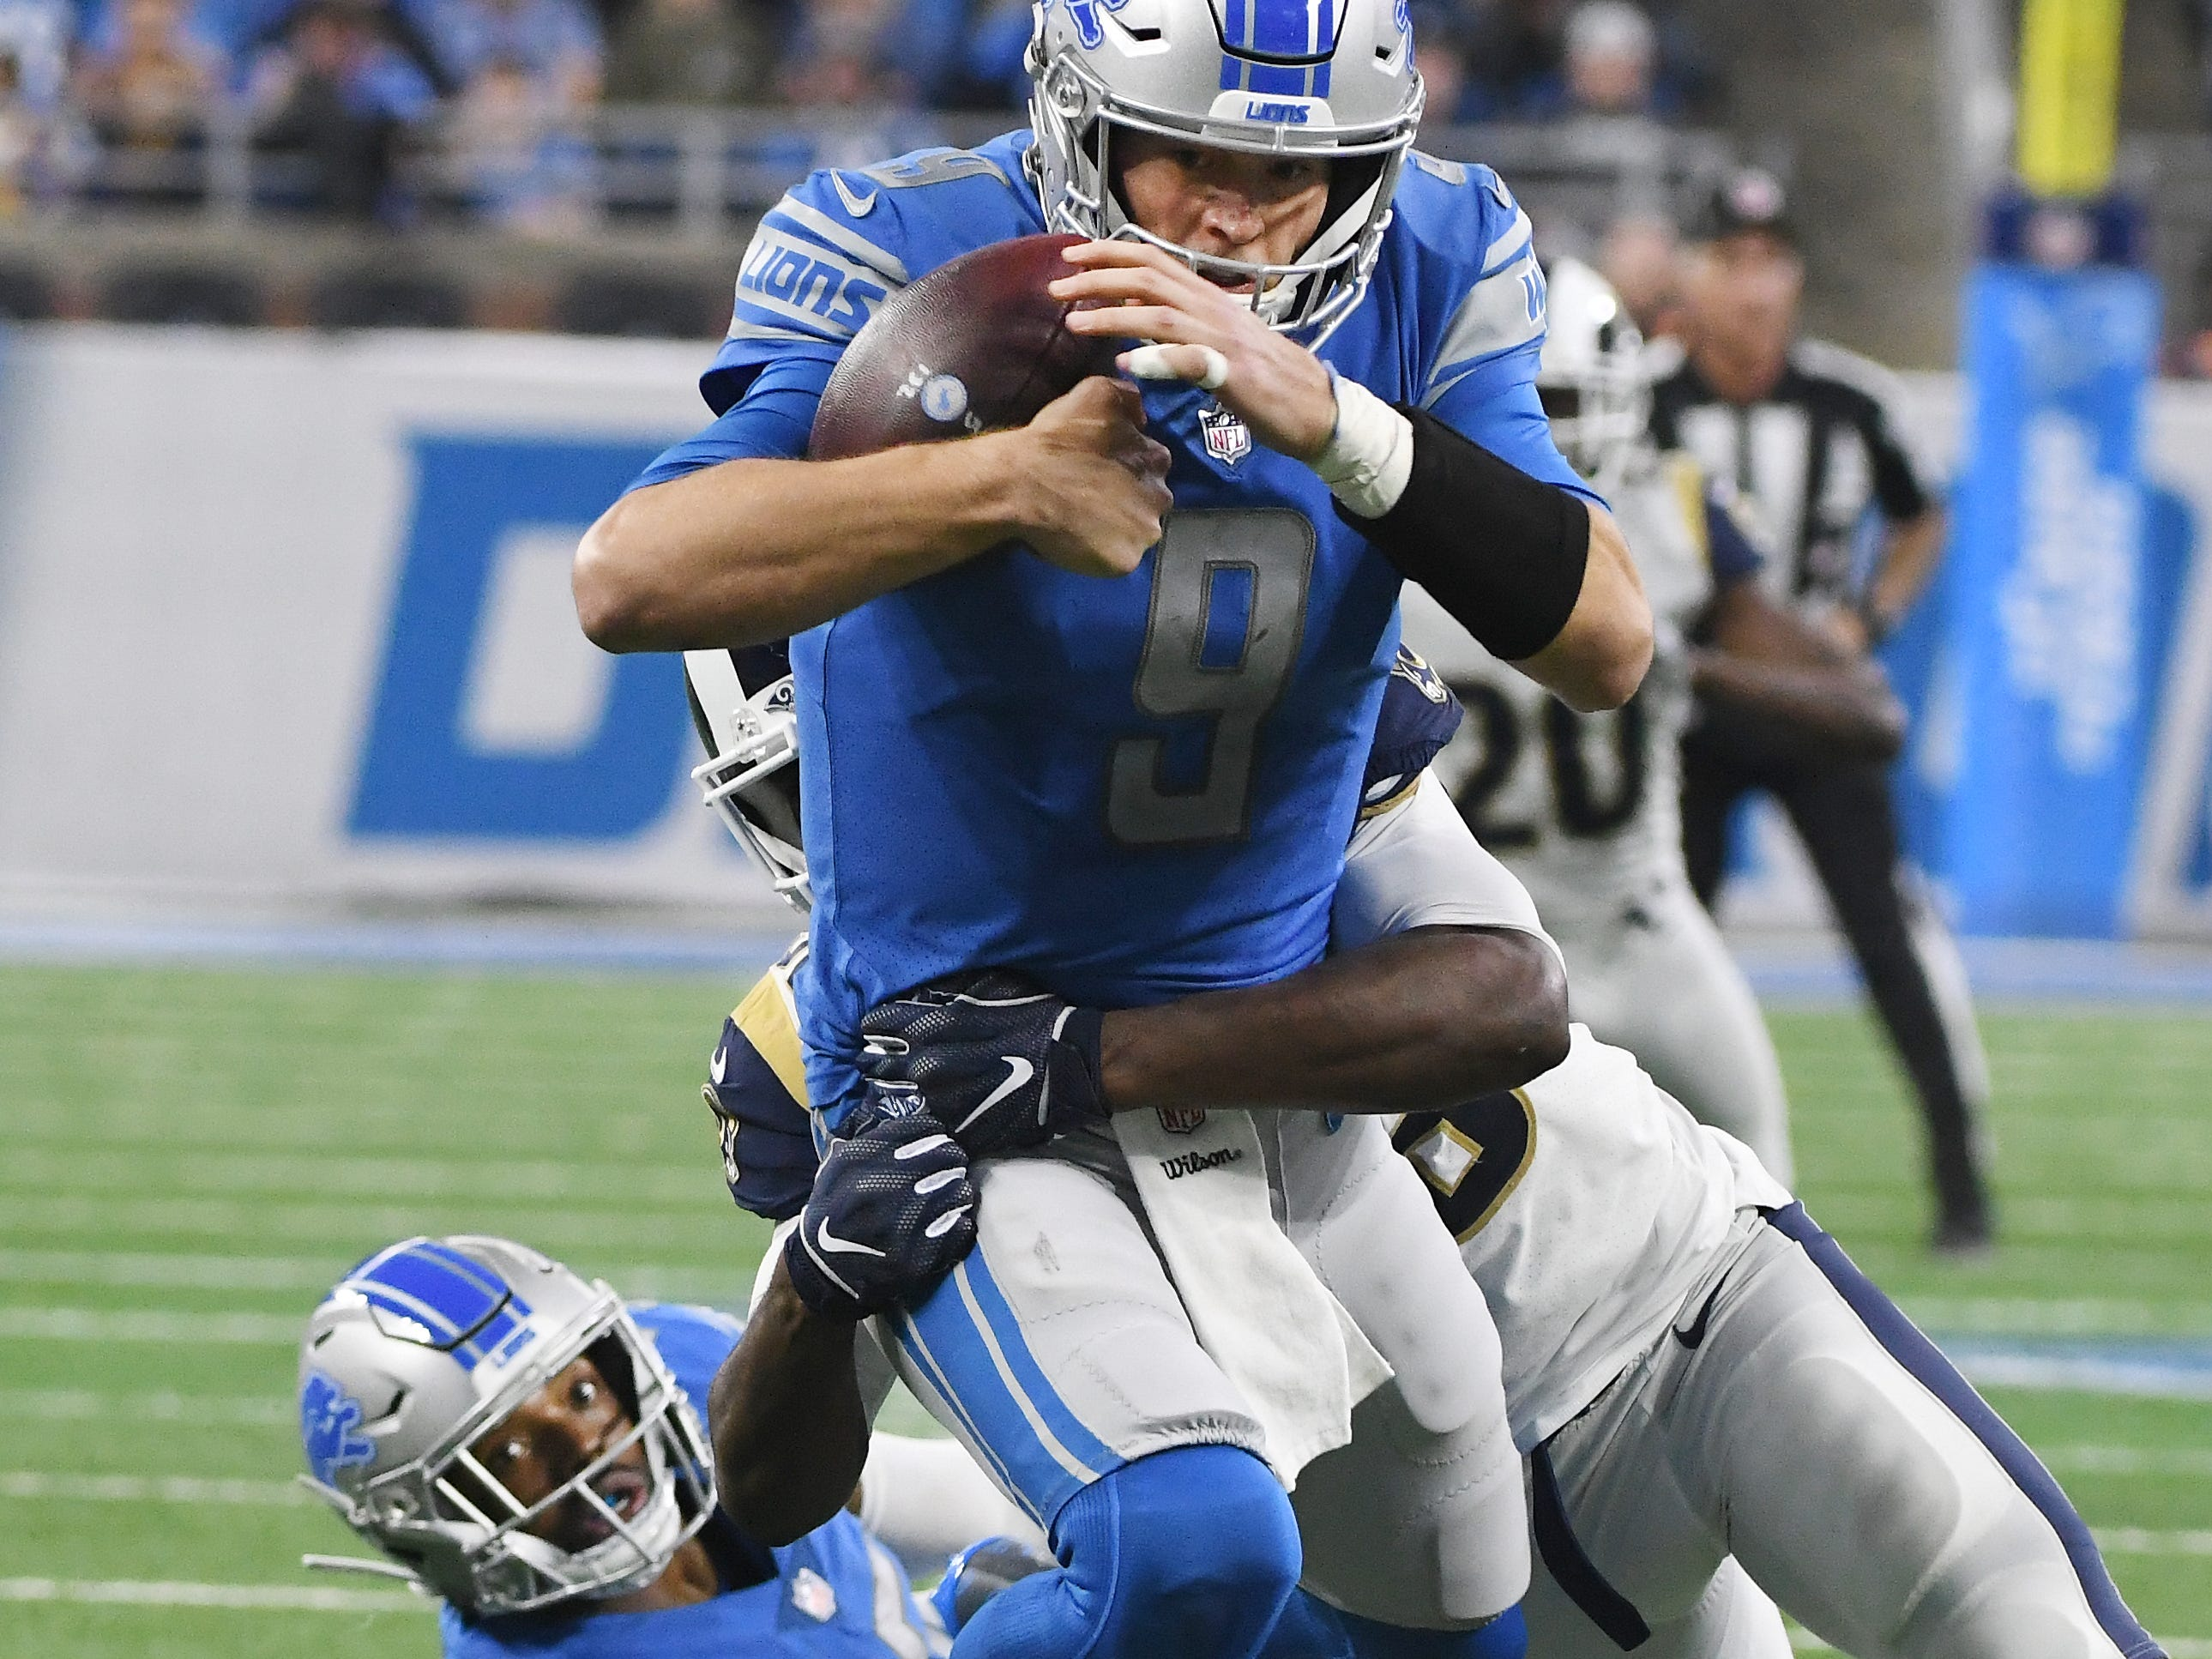 Rams' Cory Littleton gets by Lions' Theo Riddick and sacks Lions quarterback Matthew Stafford in the second quarter.